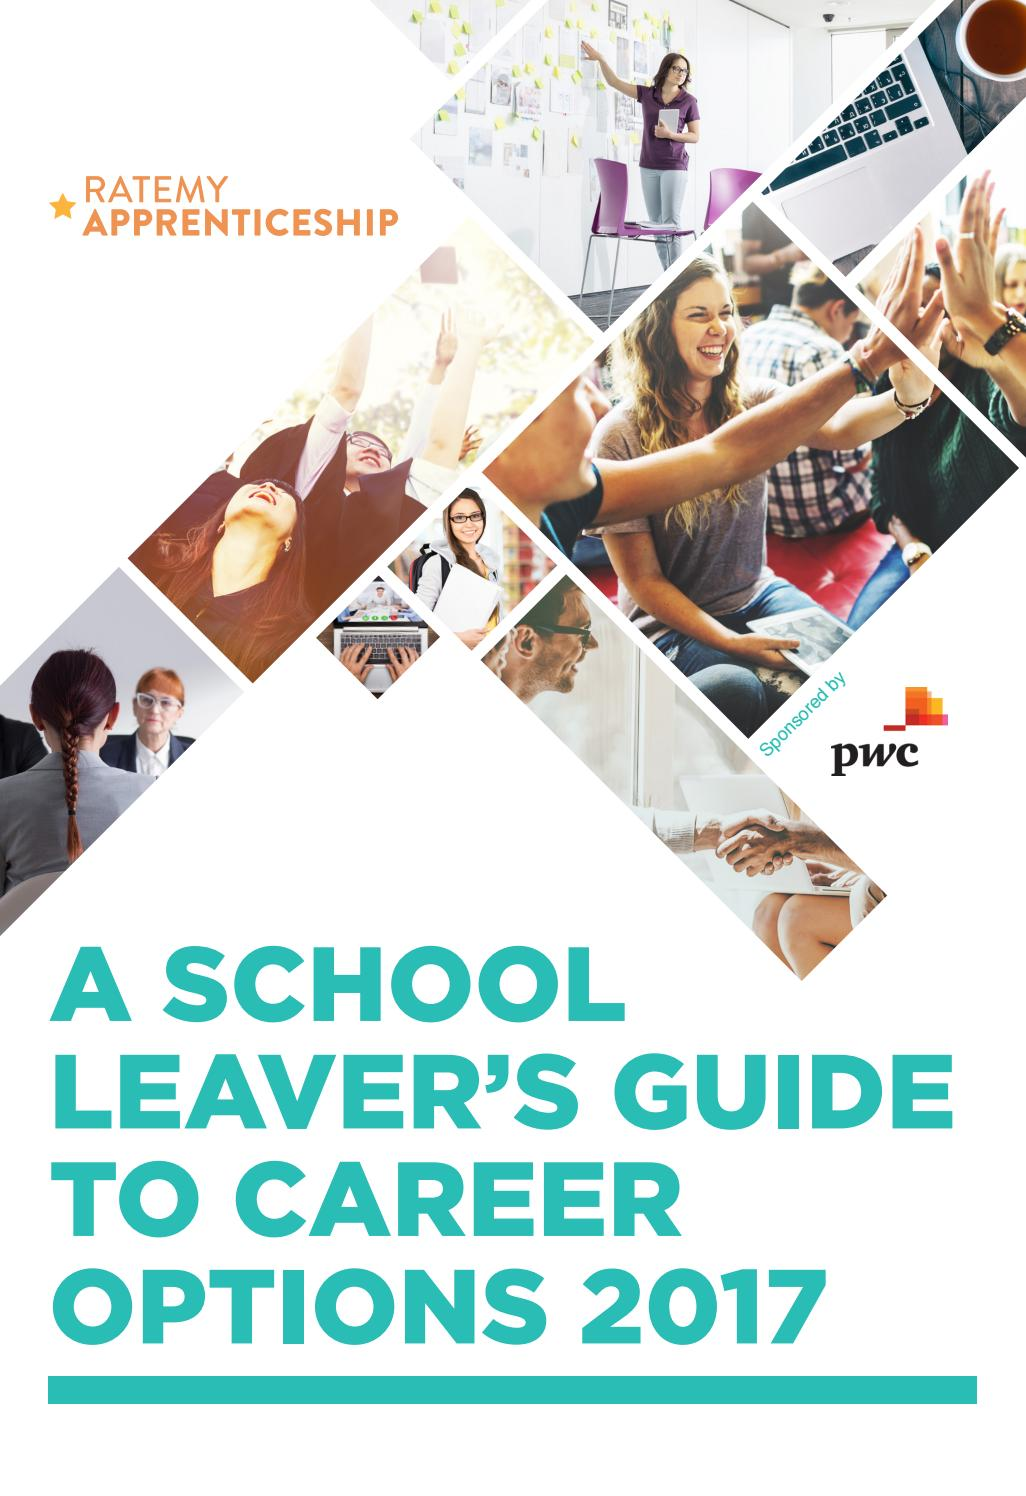 a school leaver s guide to career options 2015 by rmp enterprise a school leaver s guide to career options 2015 by rmp enterprise issuu